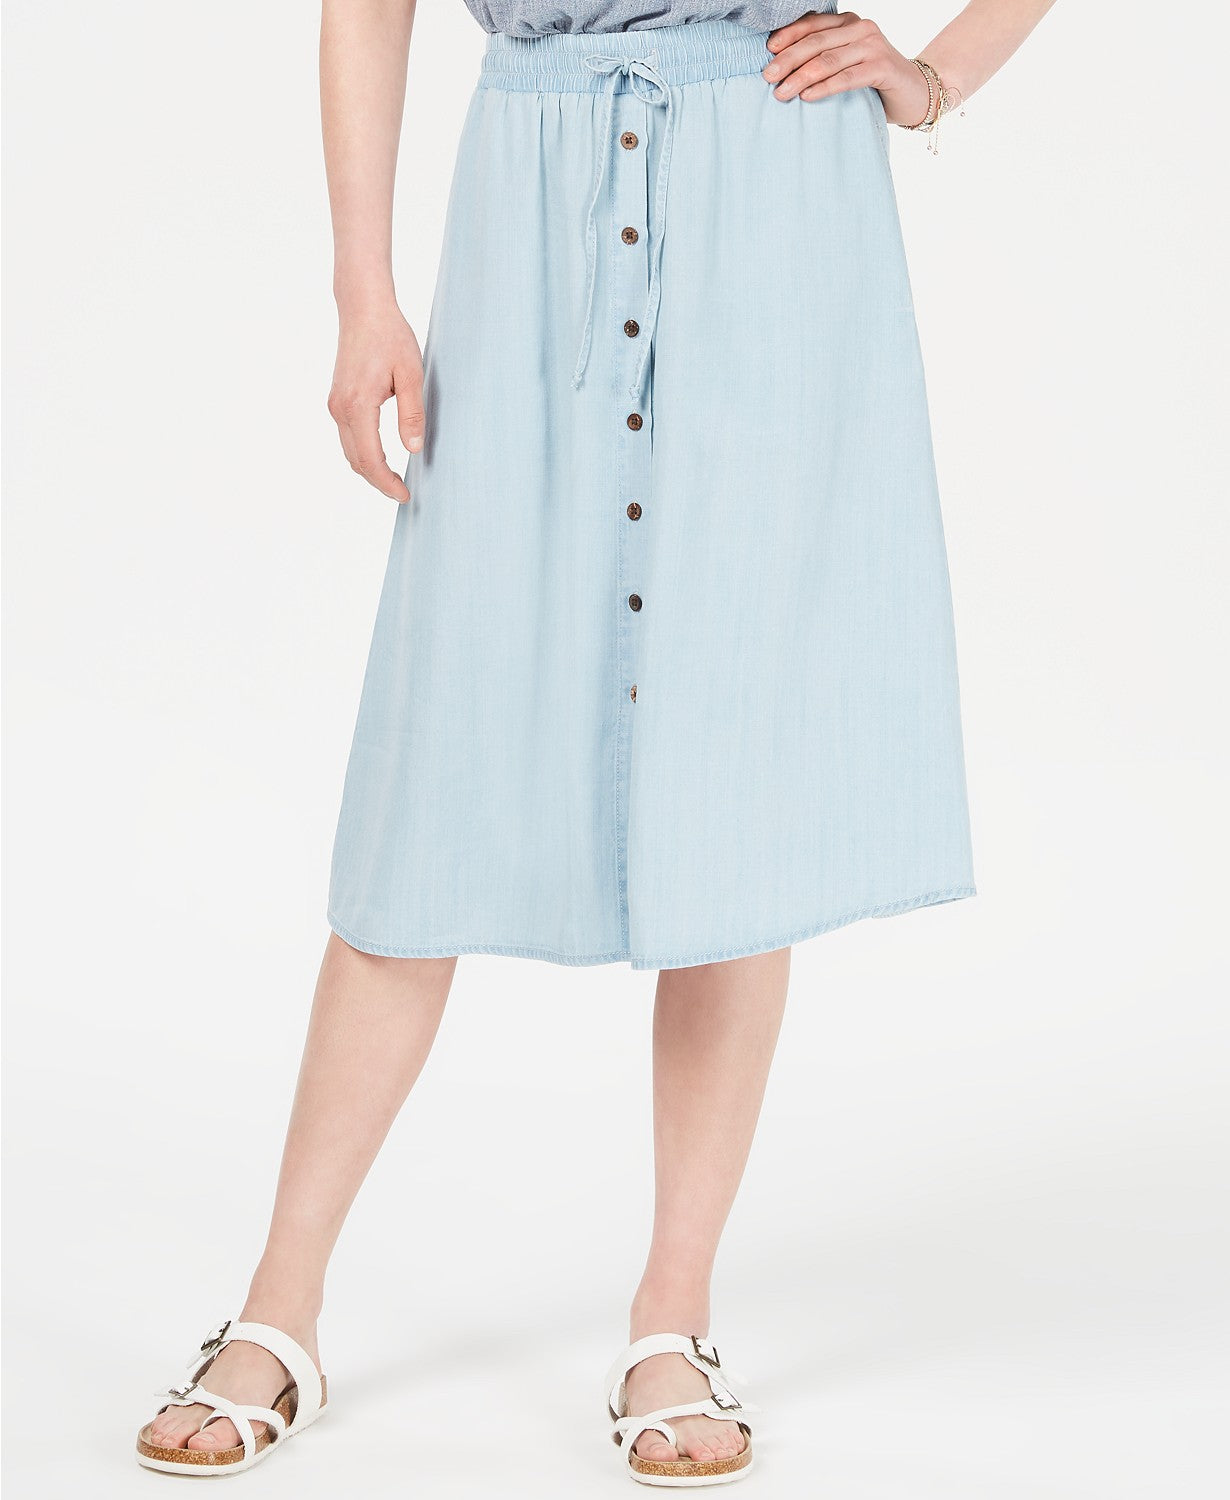 Style & Co Chambray Button-Front Midi Skirt